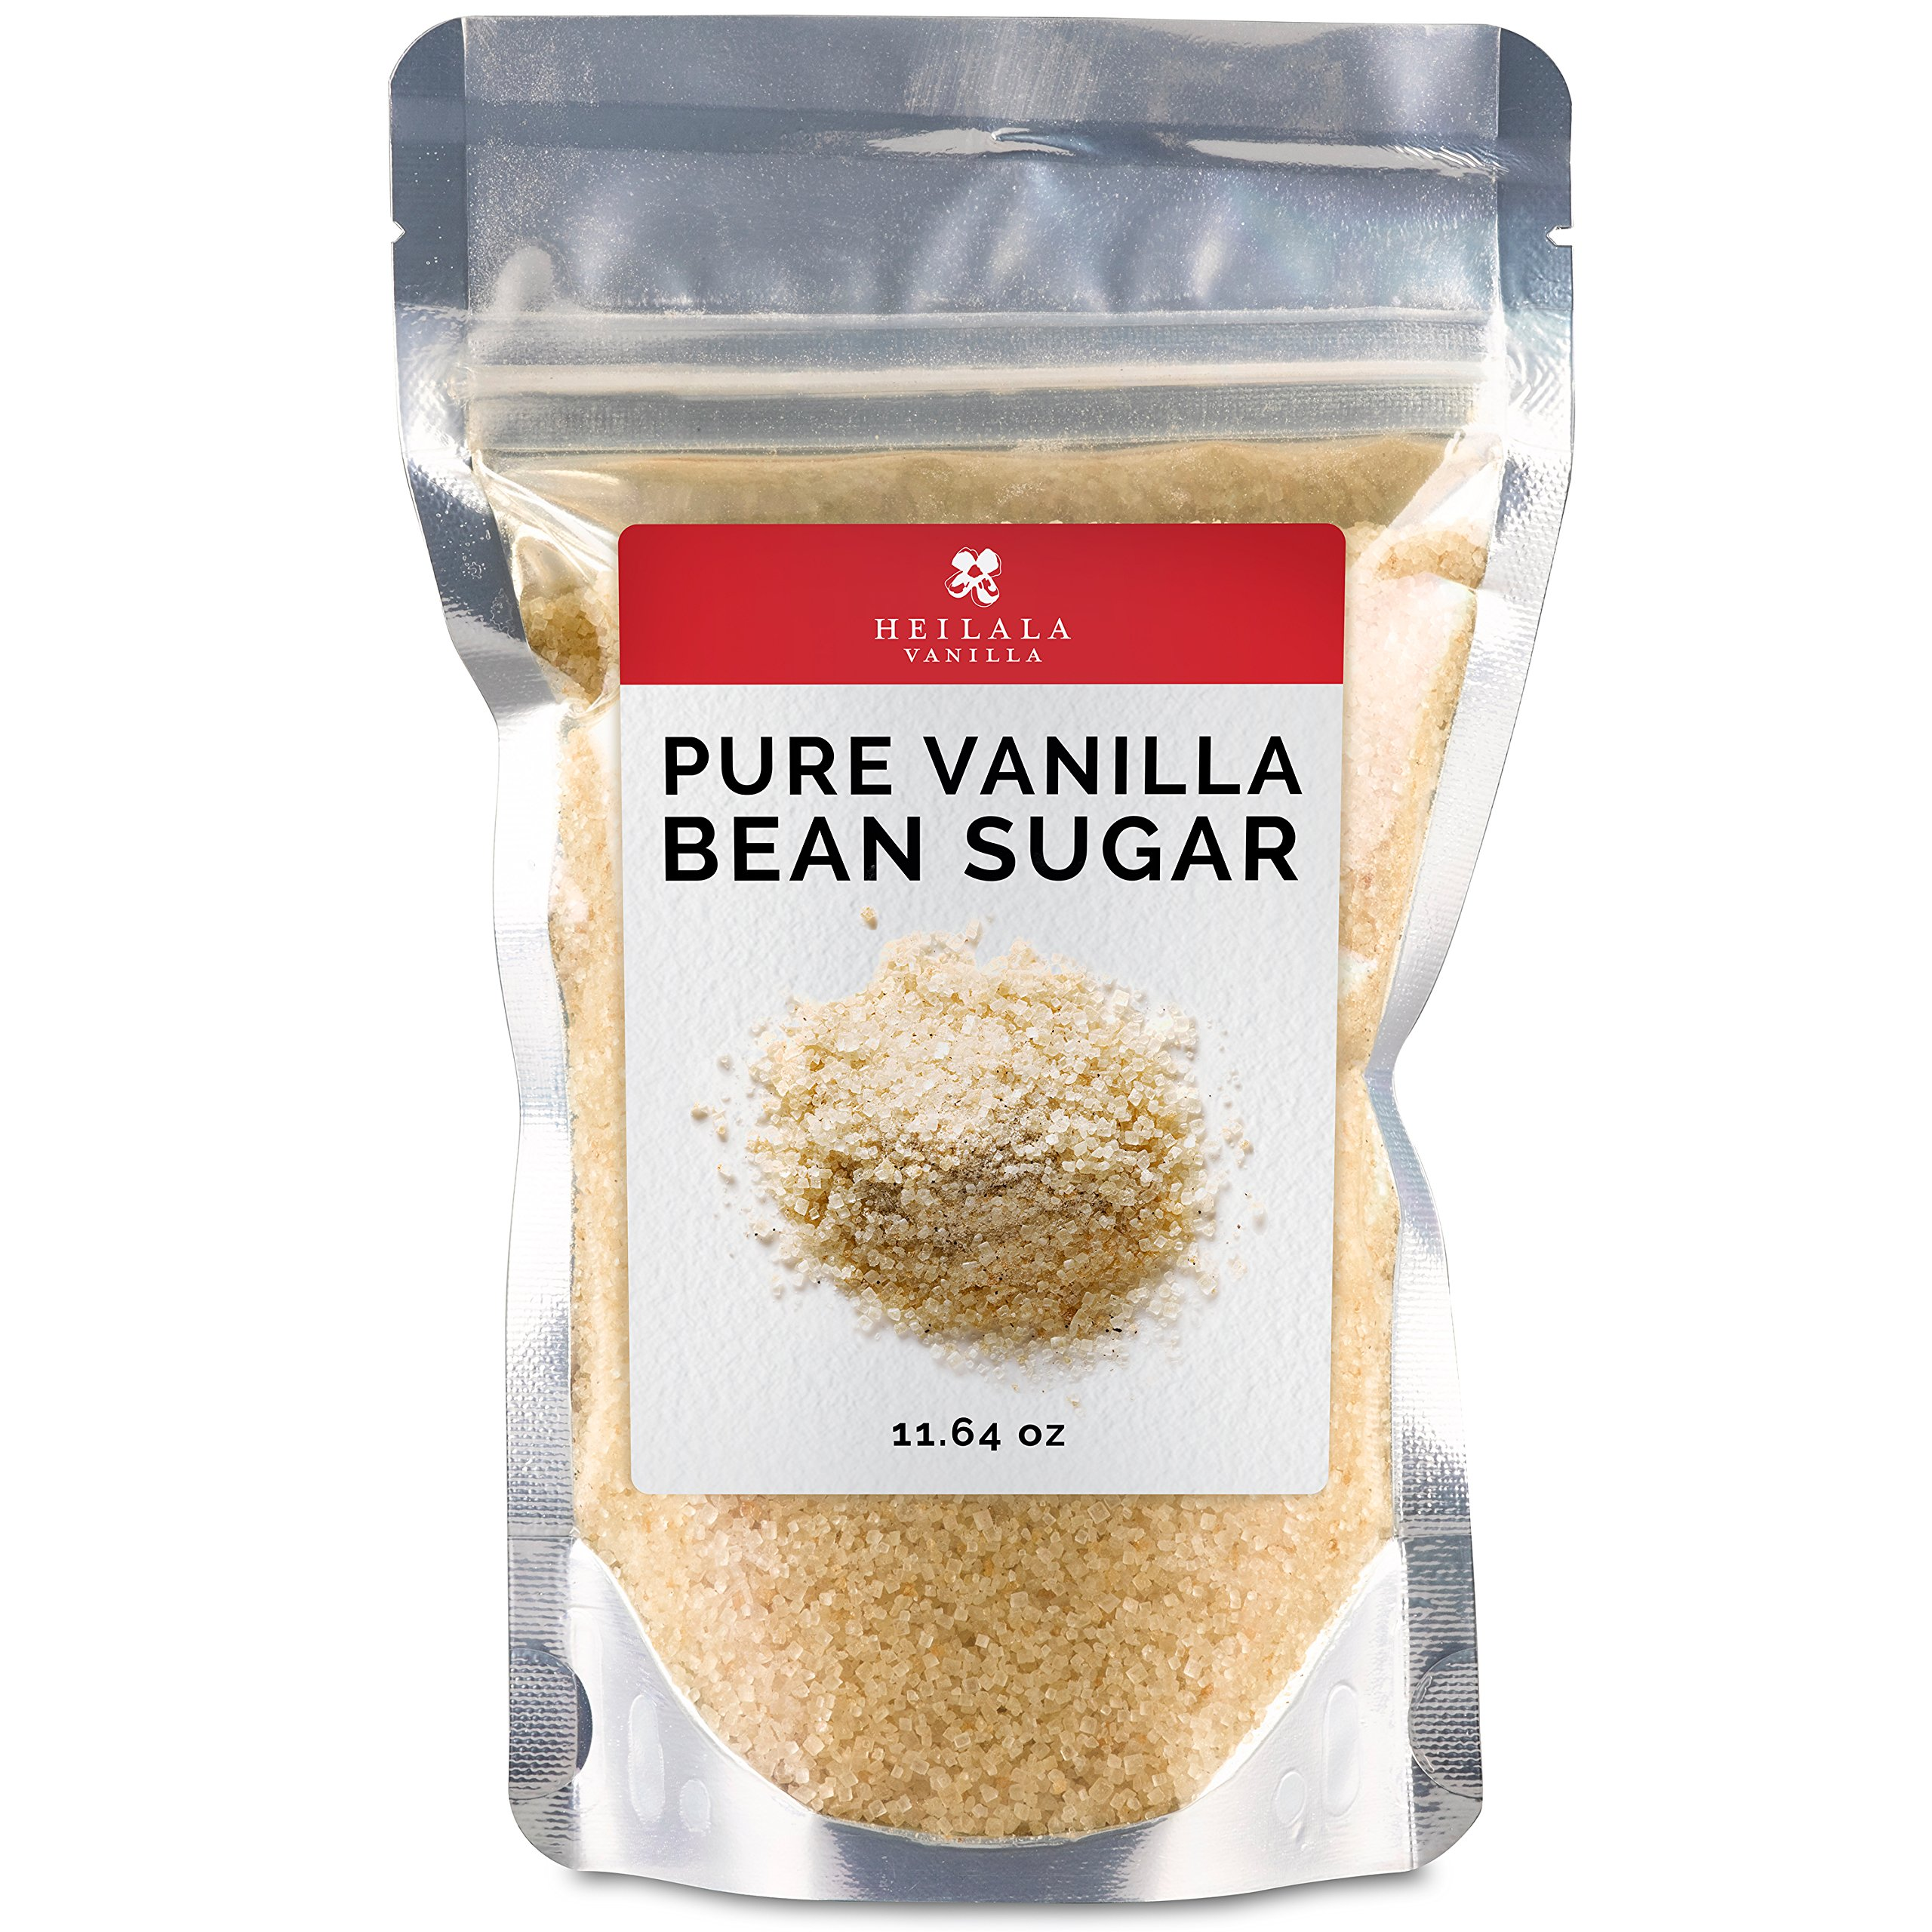 Pure Granulated Vanilla Bean Sugar - Ground Vanilla Pods with Organic Sugar Mix, Award Winning, Hand Picked in Tonga, Perfect for Baking, Dusting over Desserts, Coffee, Tea or Oatmeal